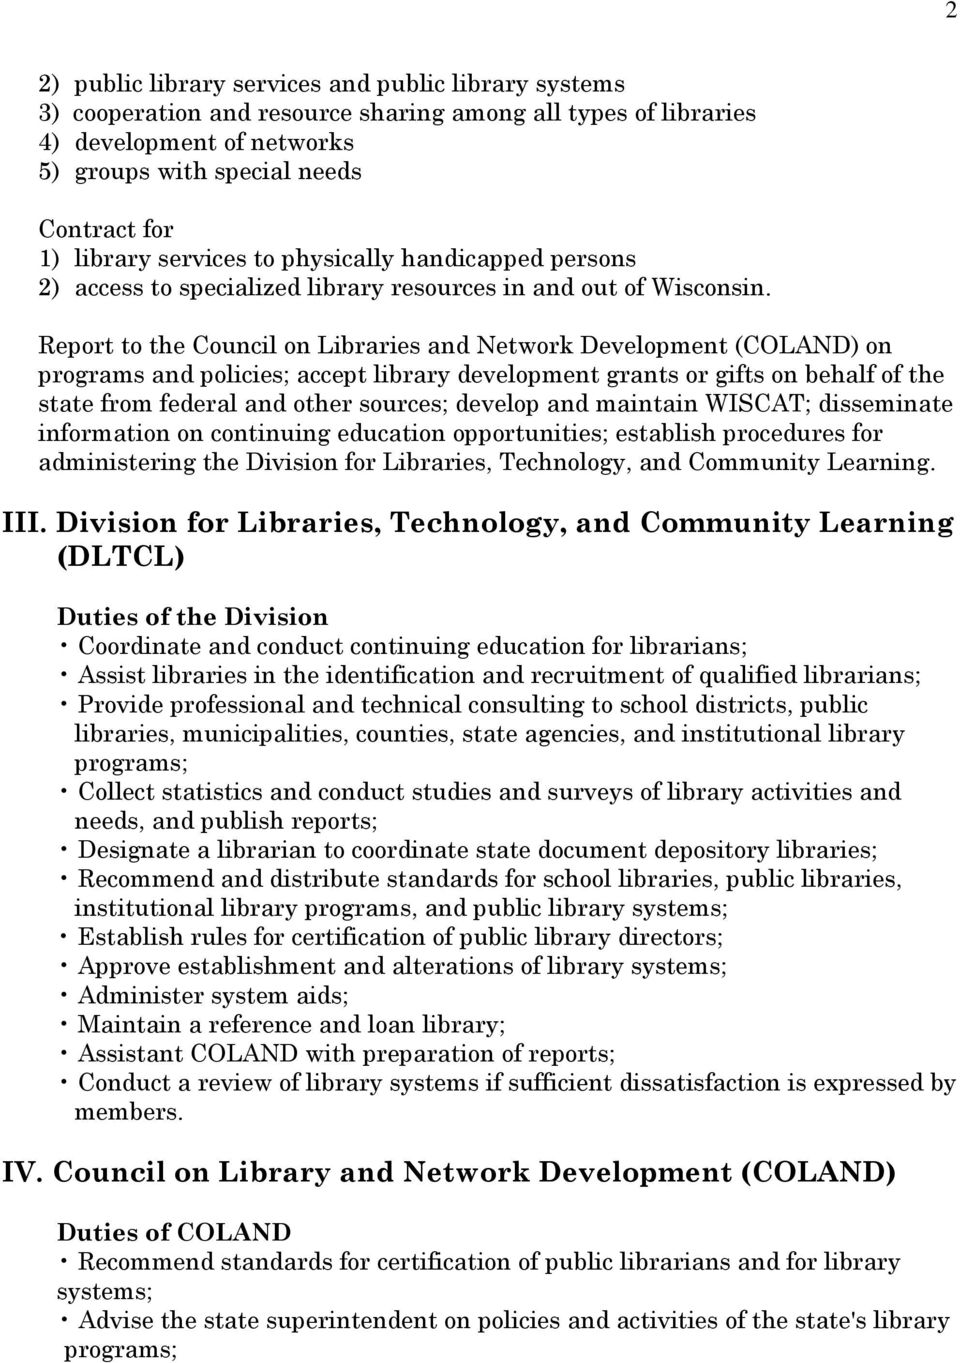 Report to the Council on Libraries and Network Development (COLAND) on programs and policies; accept library development grants or gifts on behalf of the state from federal and other sources; develop